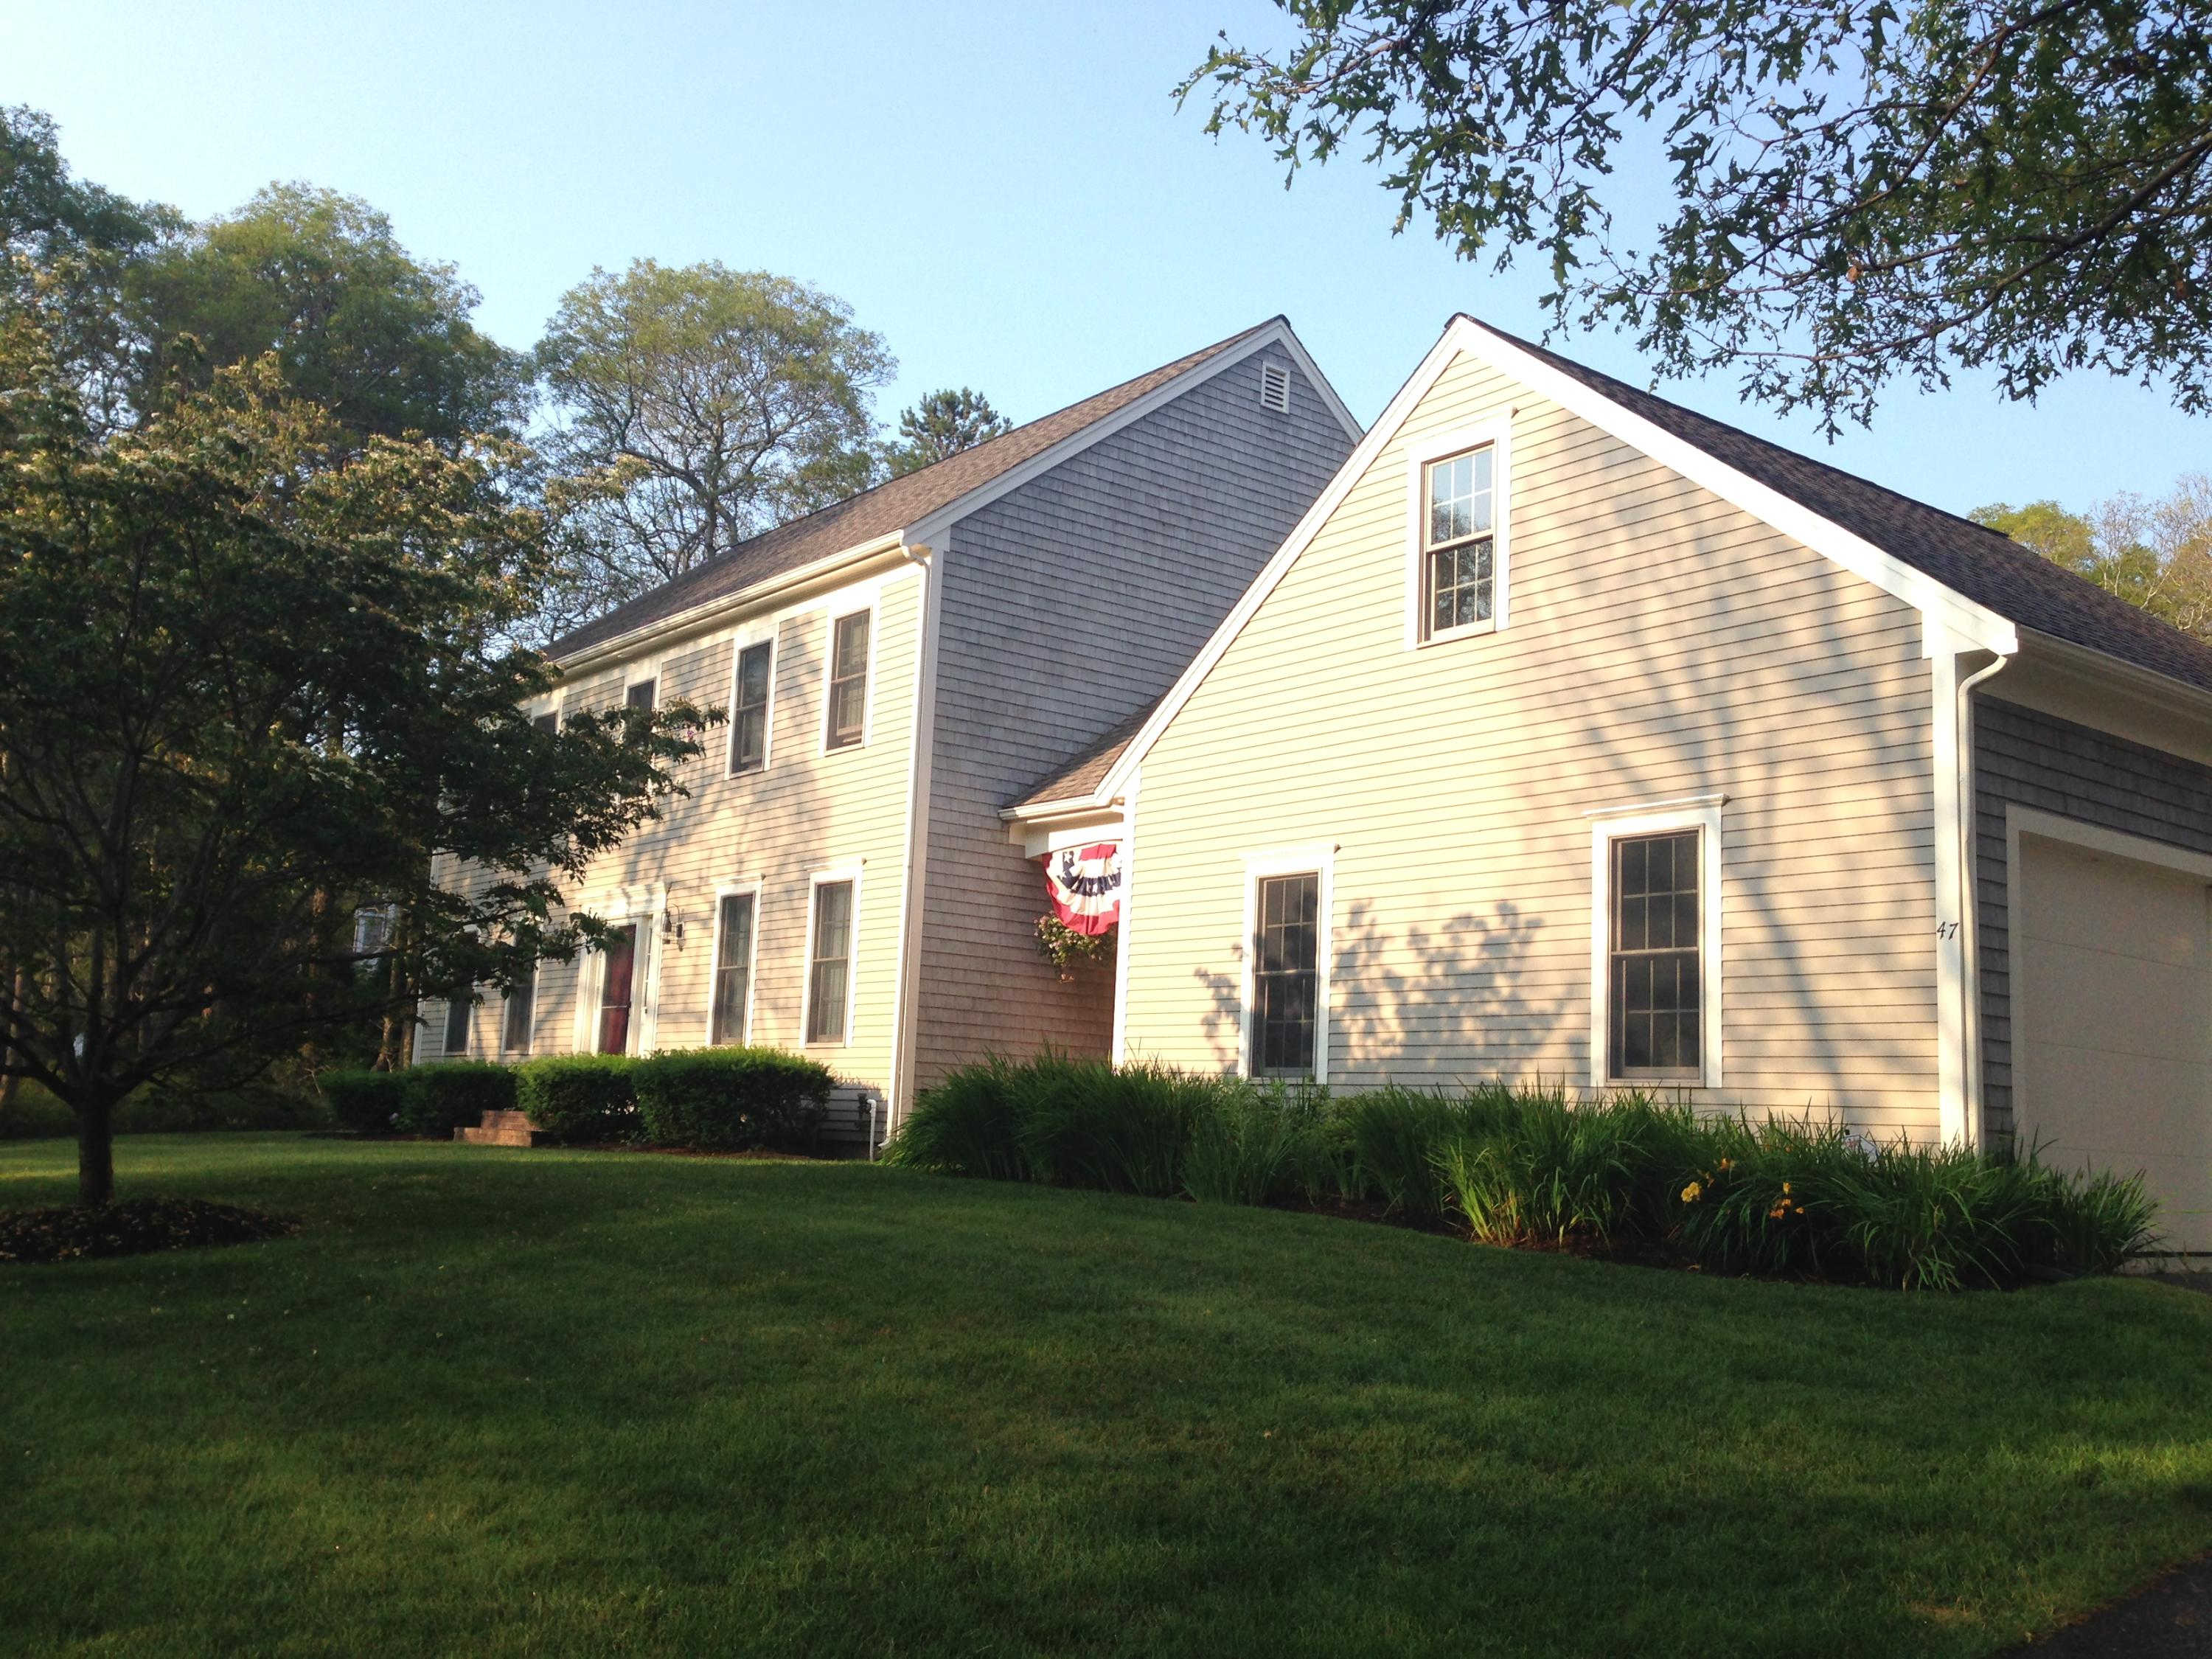 47 Barque Circle, East Dennis, MA 02641 now has a new price of $734,900!